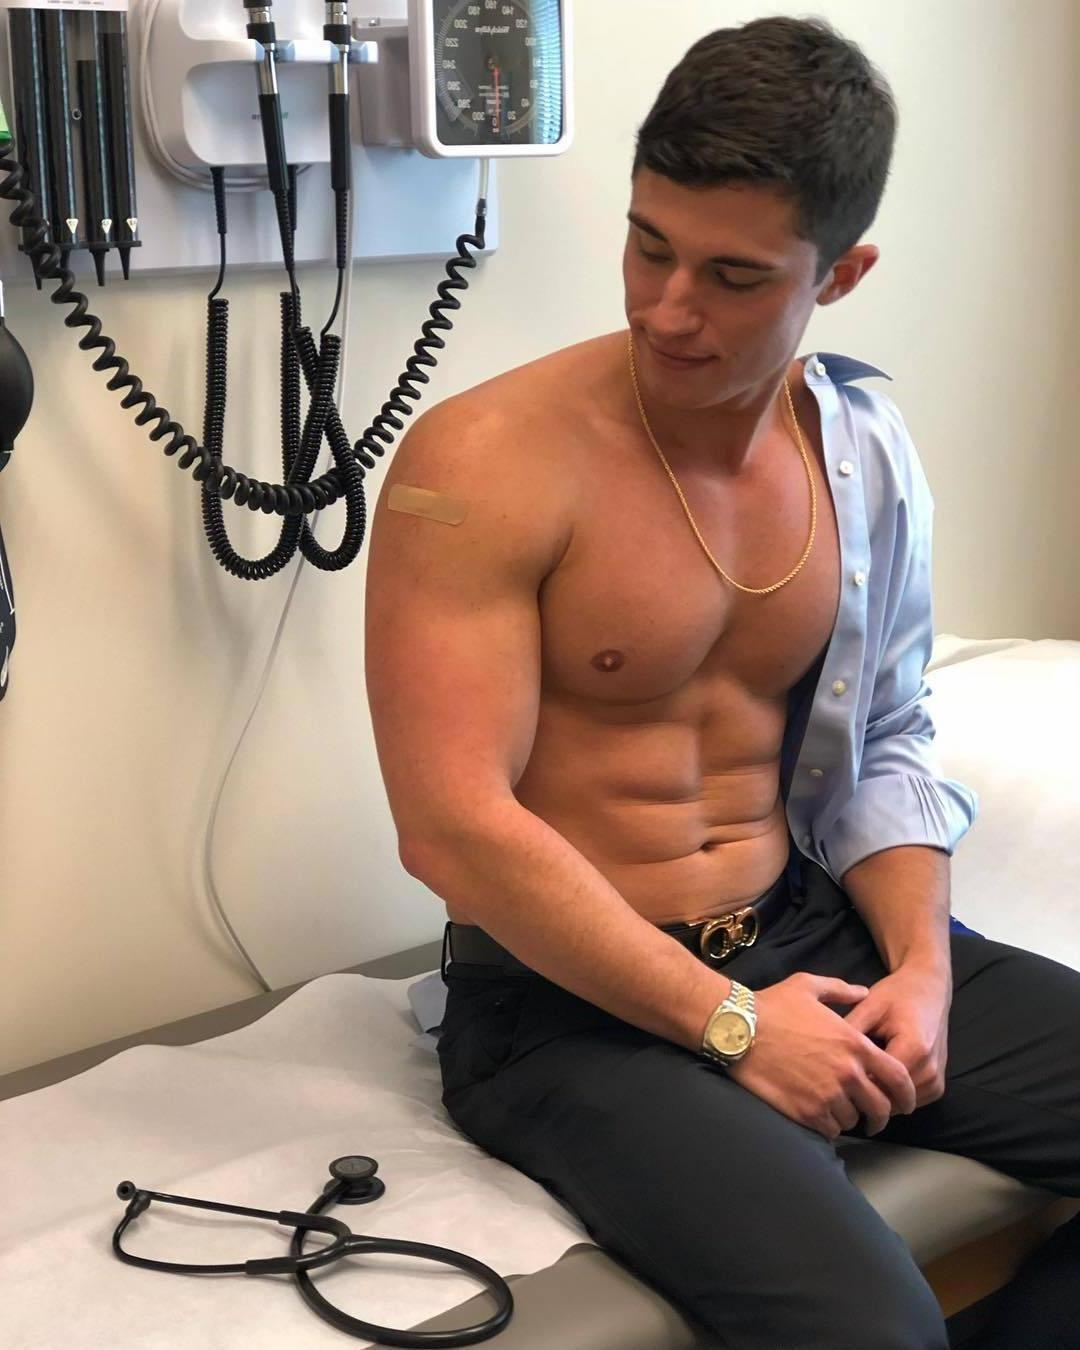 shirtless-hot-guy-doctors-office-cute-beefy-sexy-patient-hunk